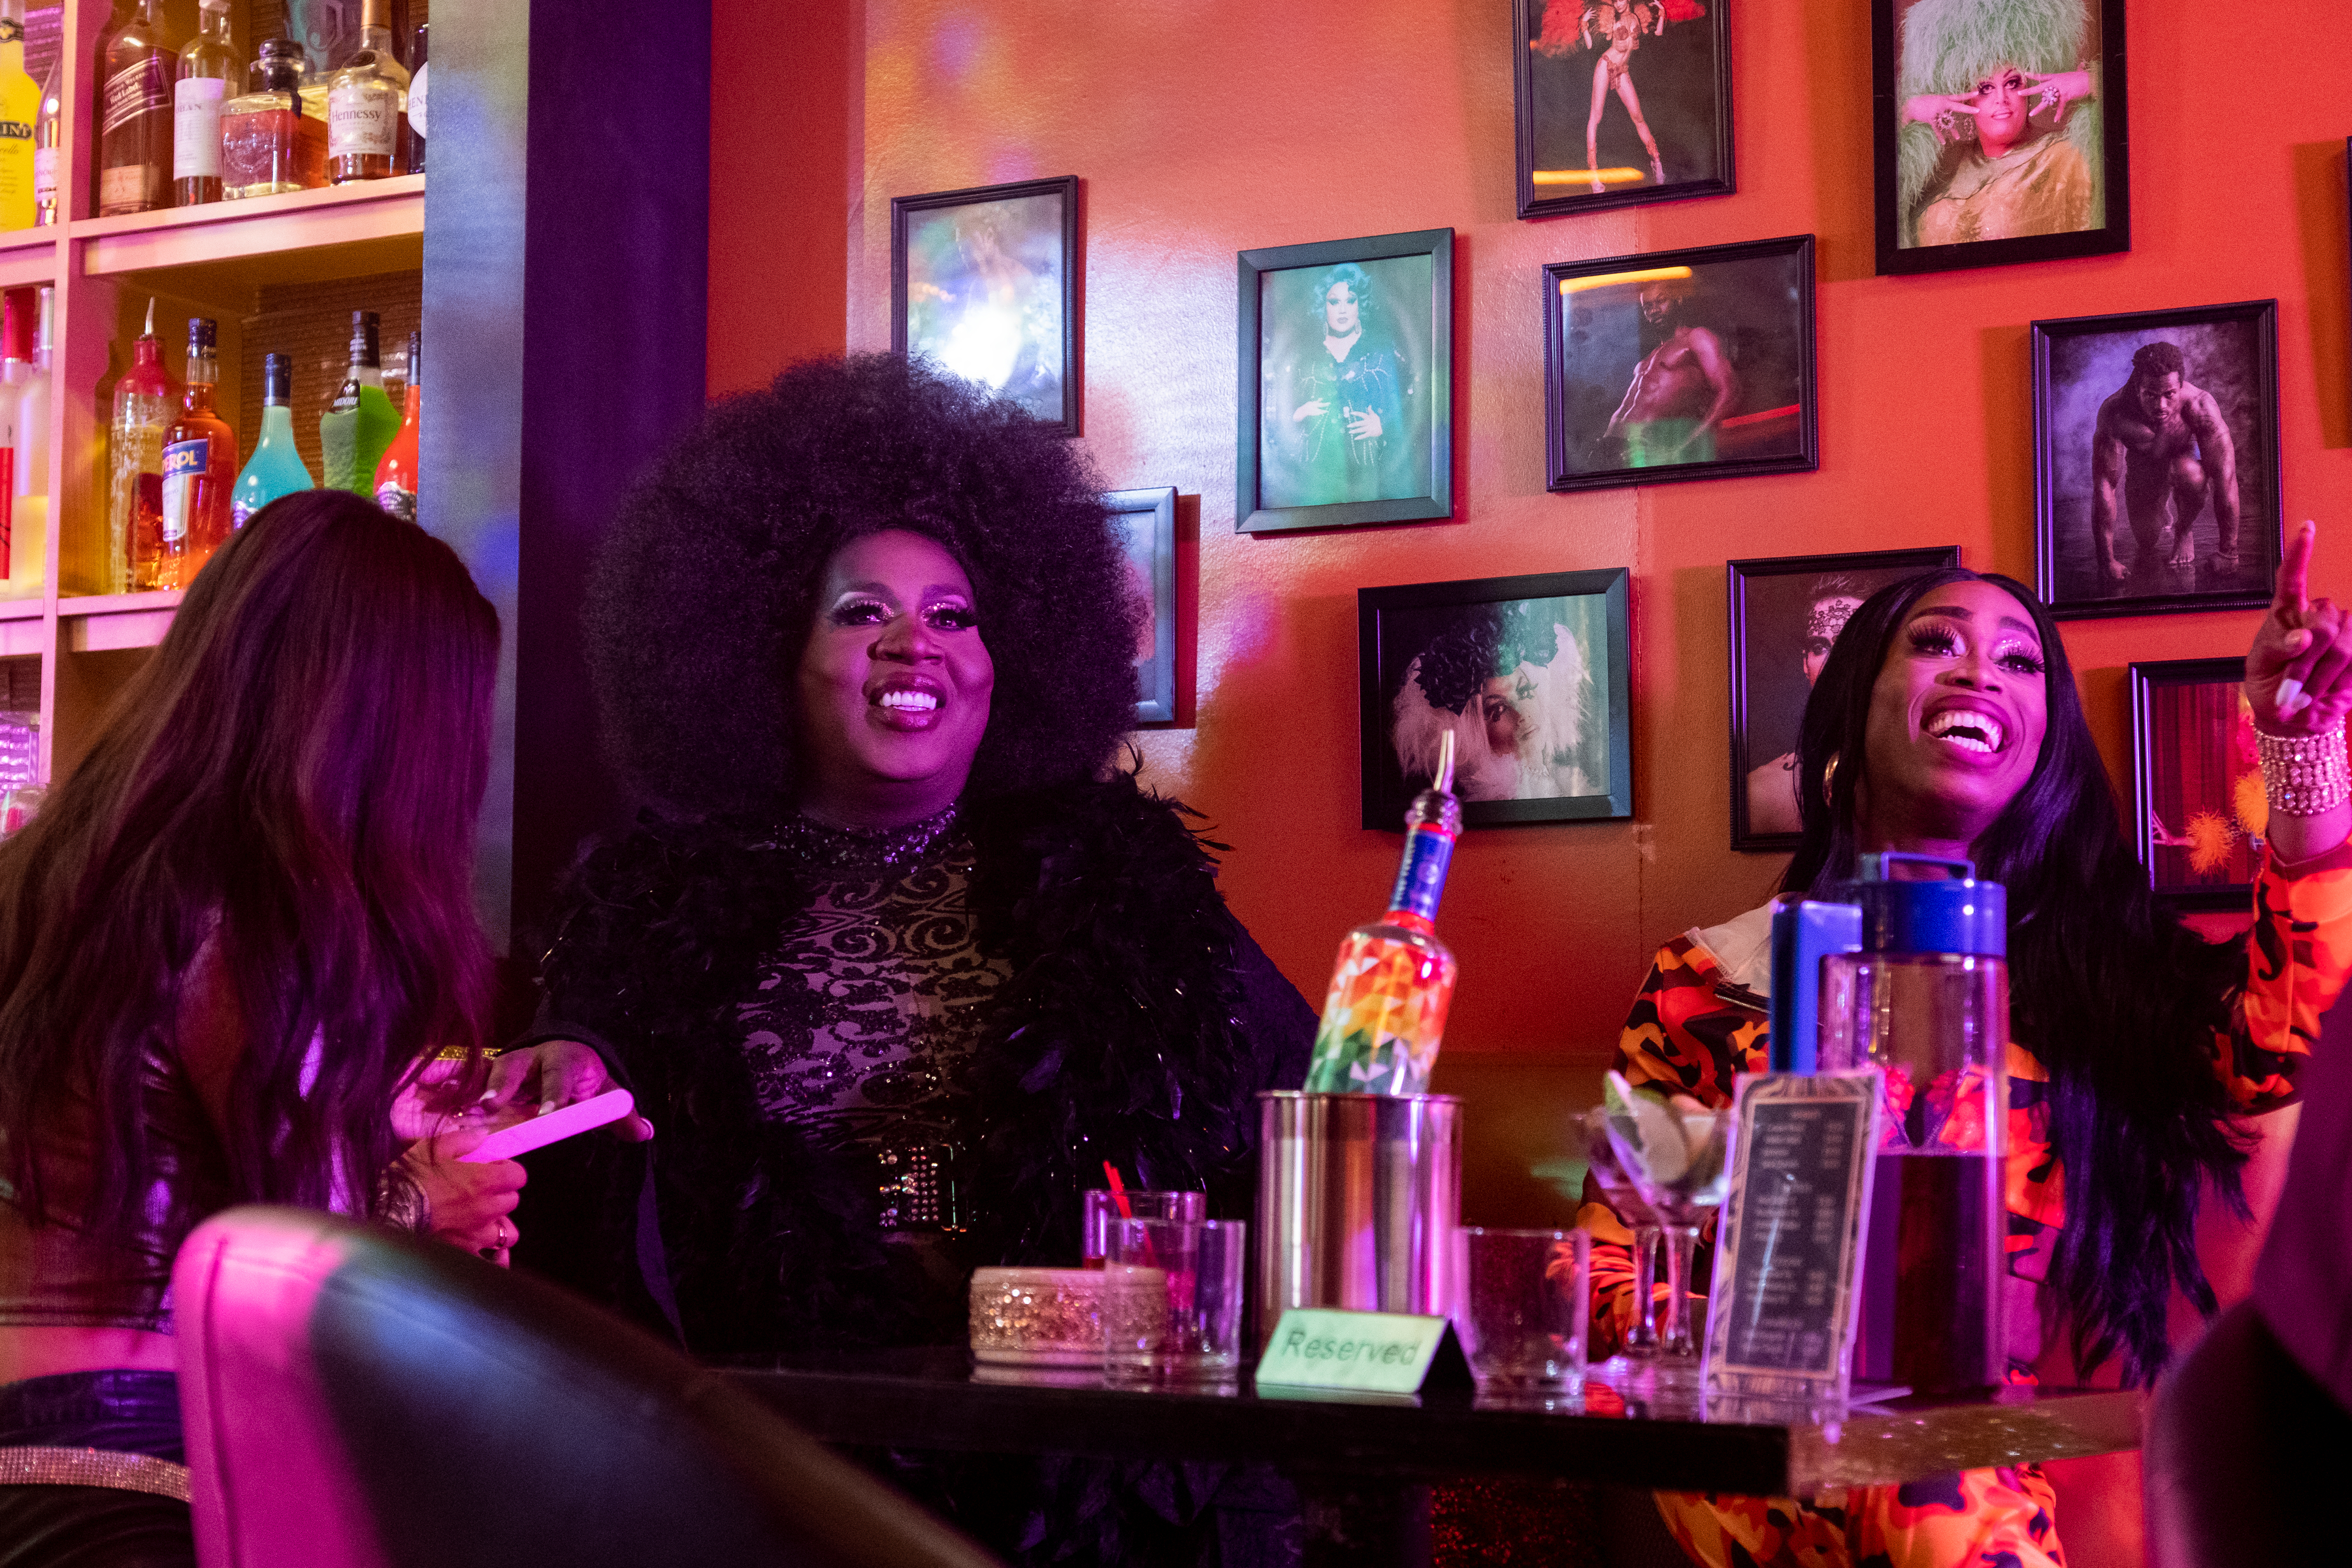 Latrice Royale and Monique Heart in AJ and the Queen